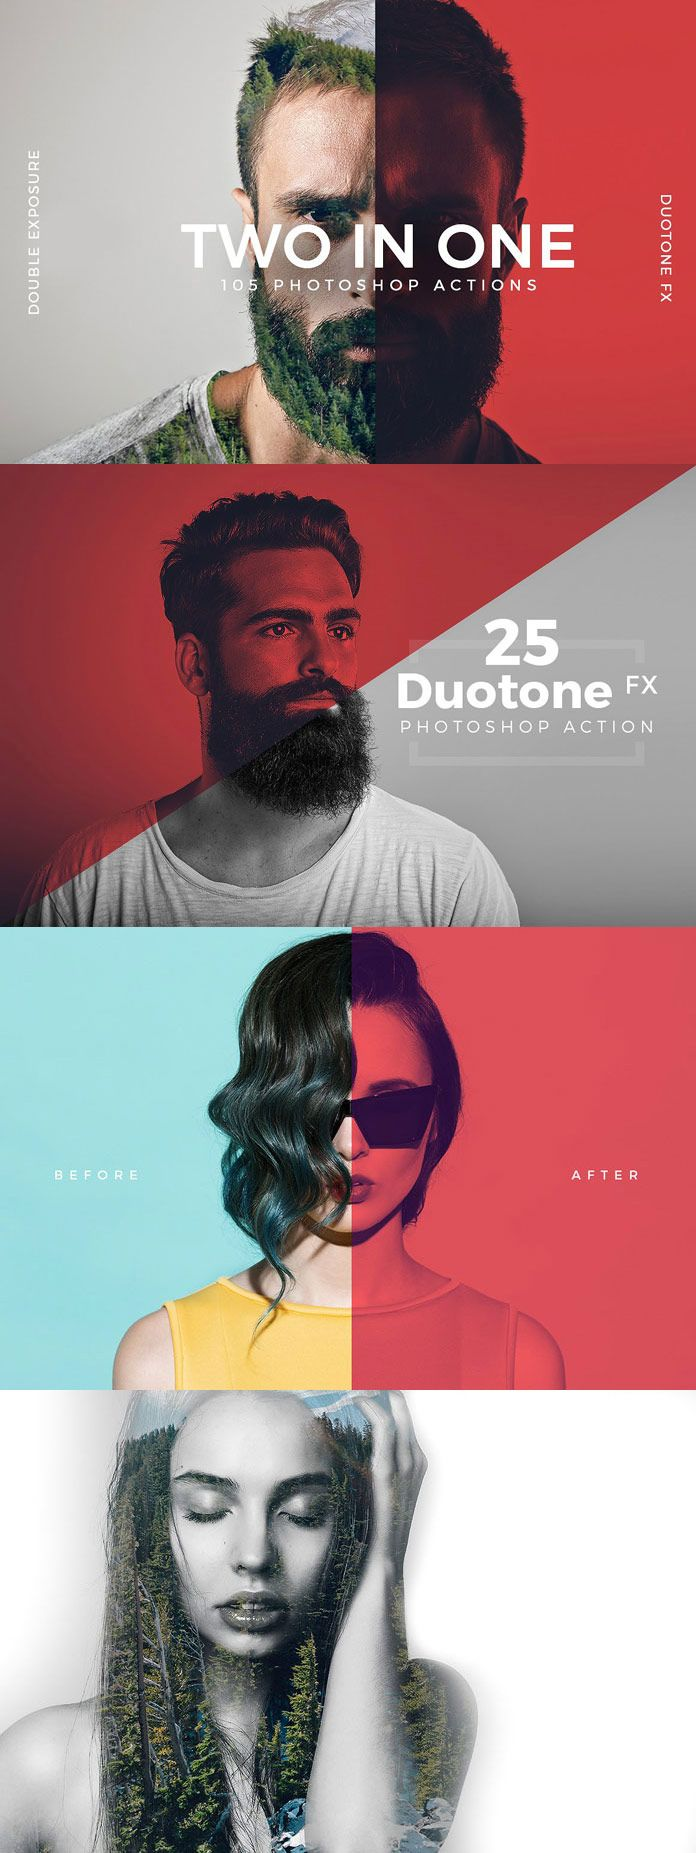 Double Exposure and Duotone Photoshop Actions